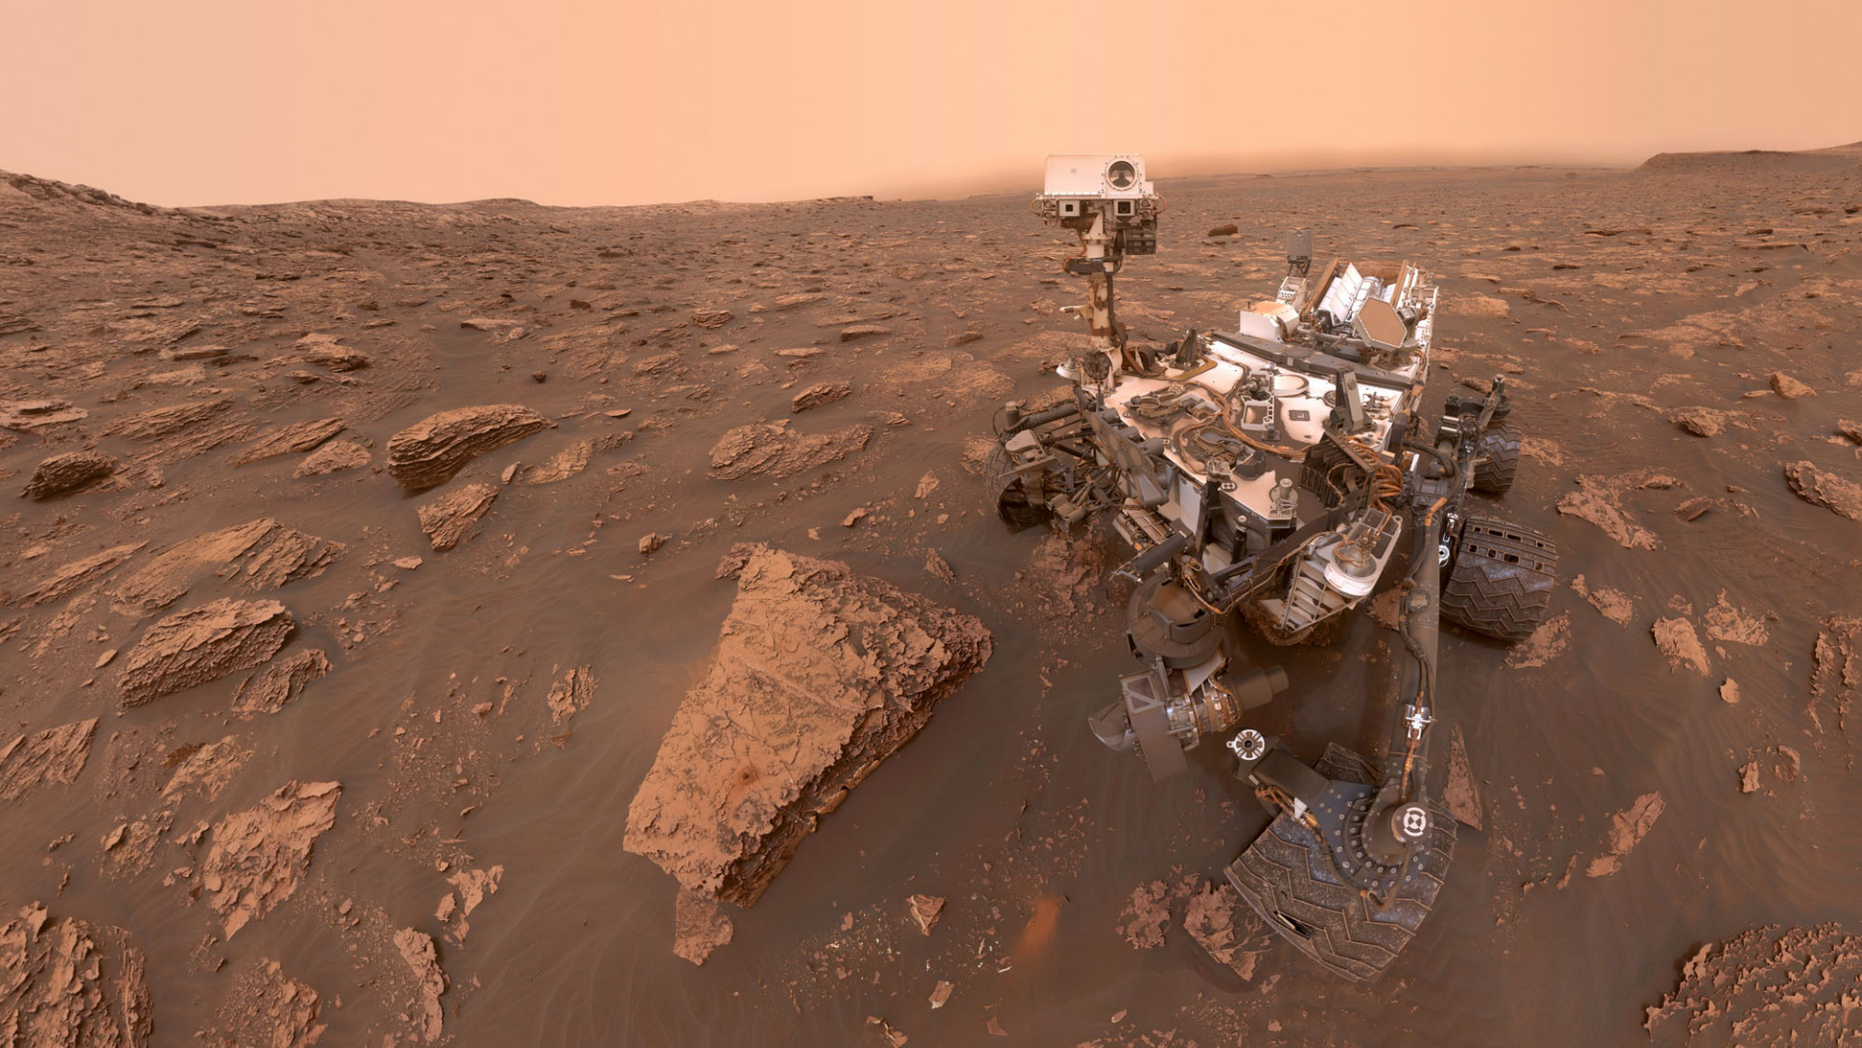 NASA's Mars rover Curiosity snapped this self-portrait on June 15, 2018 at Gale Crater during a growing dust storm. Since then, the dust storm has engulfed all of Mars.